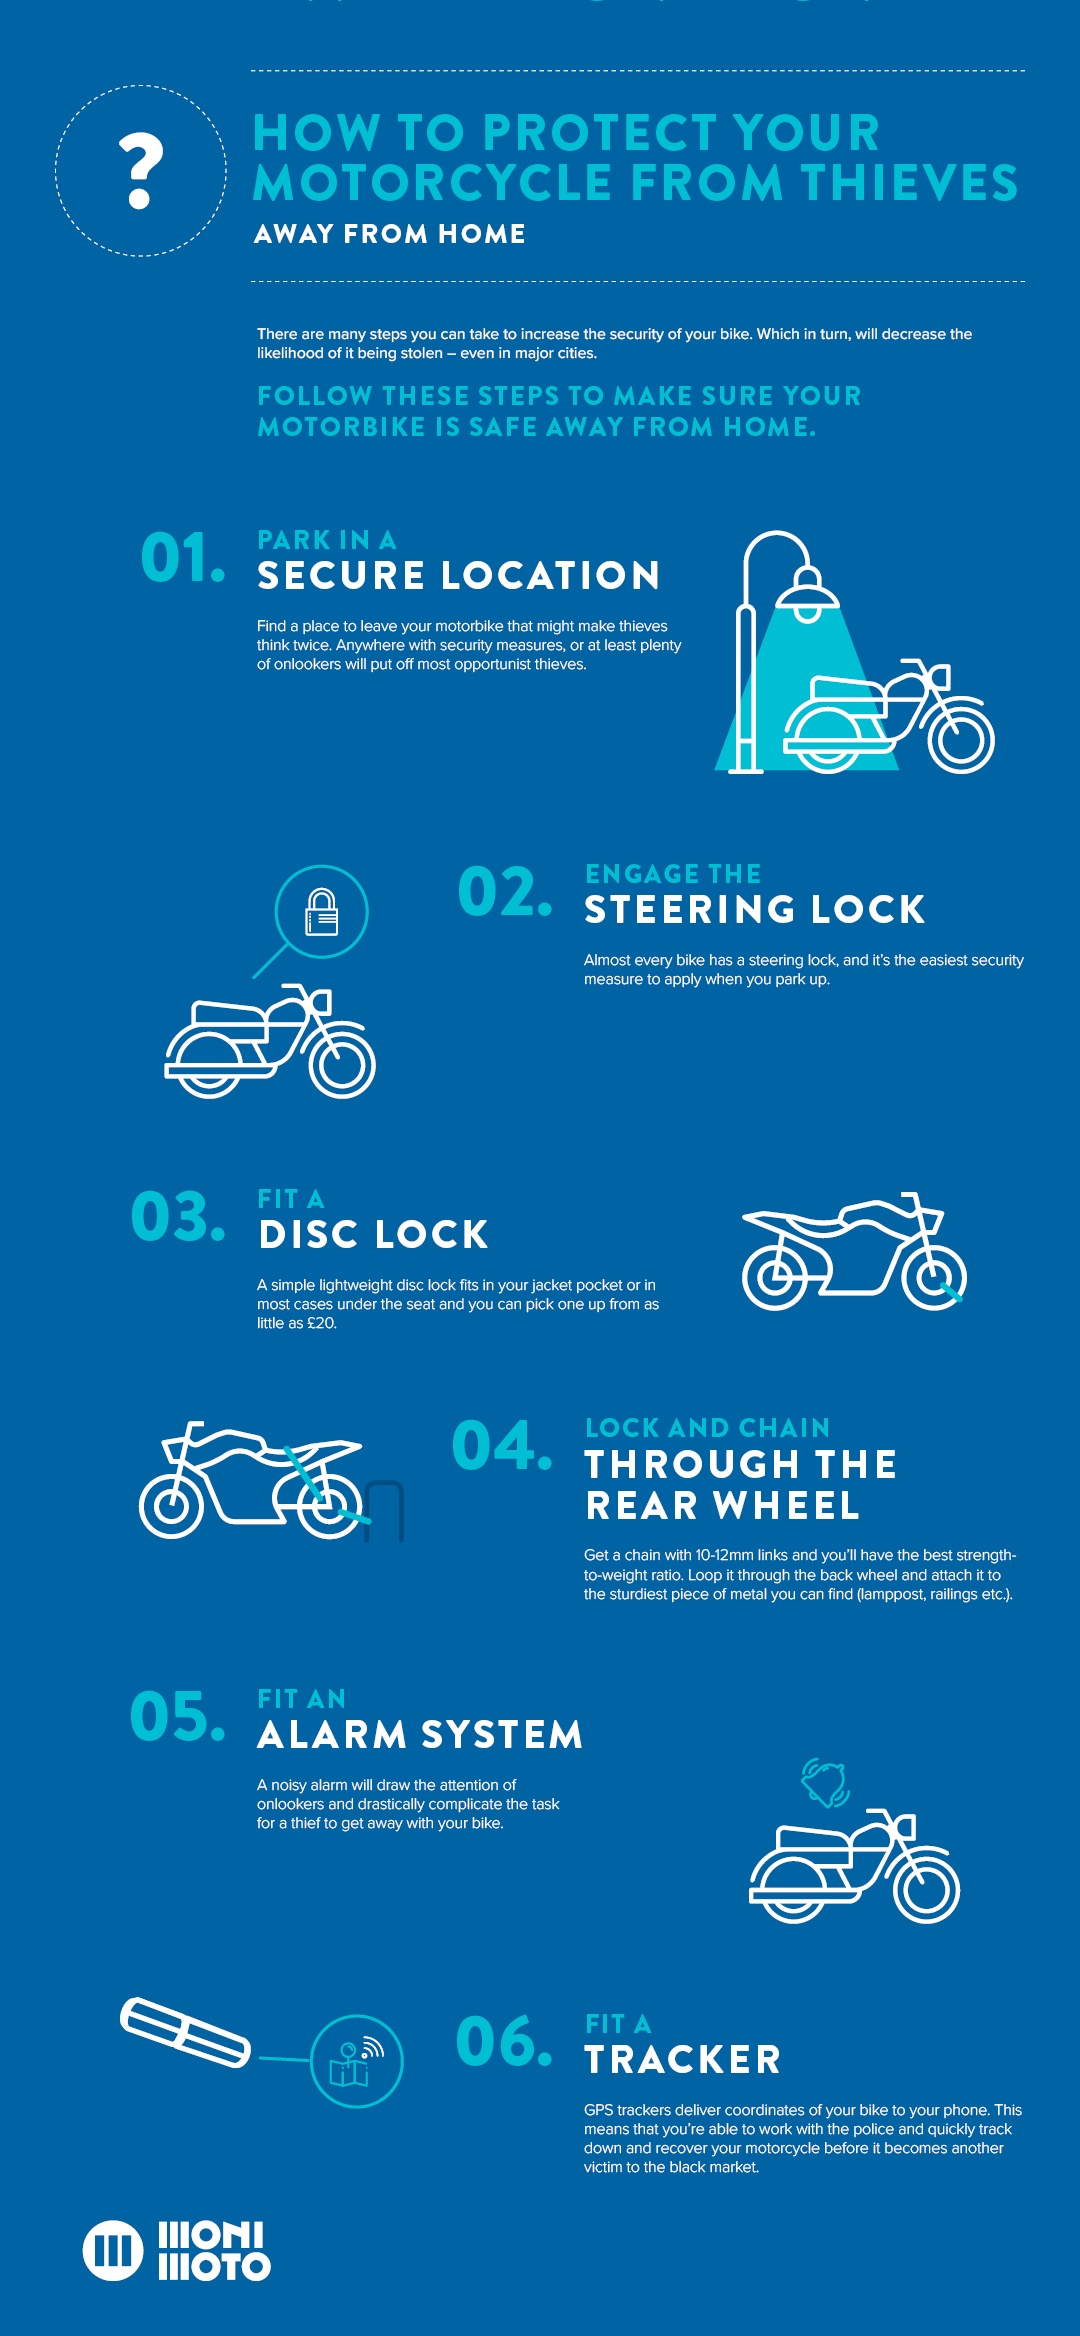 How to protect your motorcycle from thieves away from home